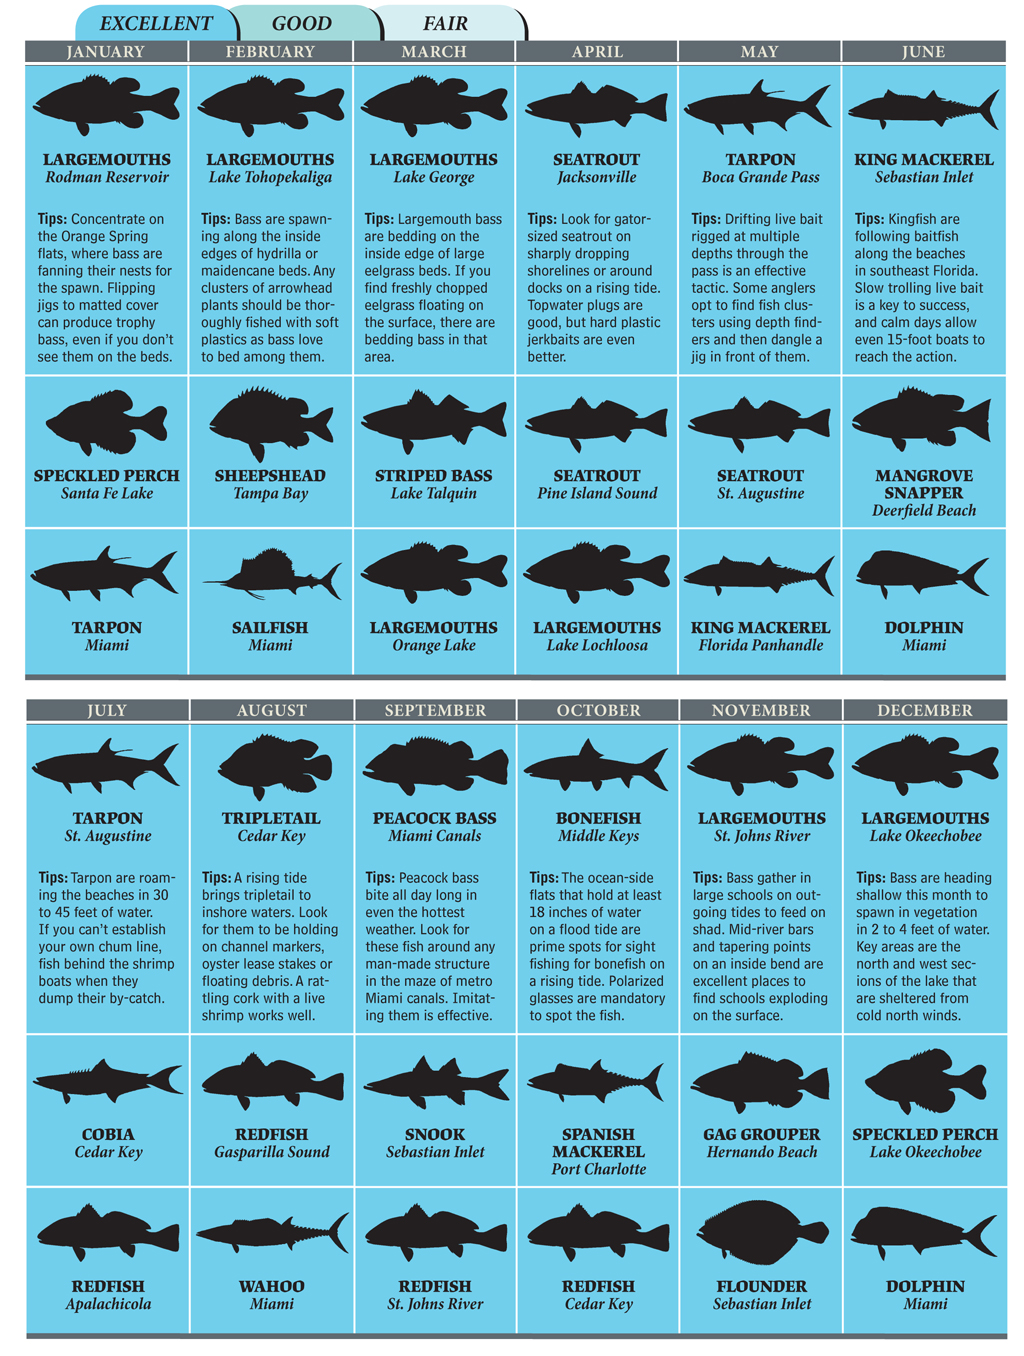 Top Spots for Florida Fishing in 2012